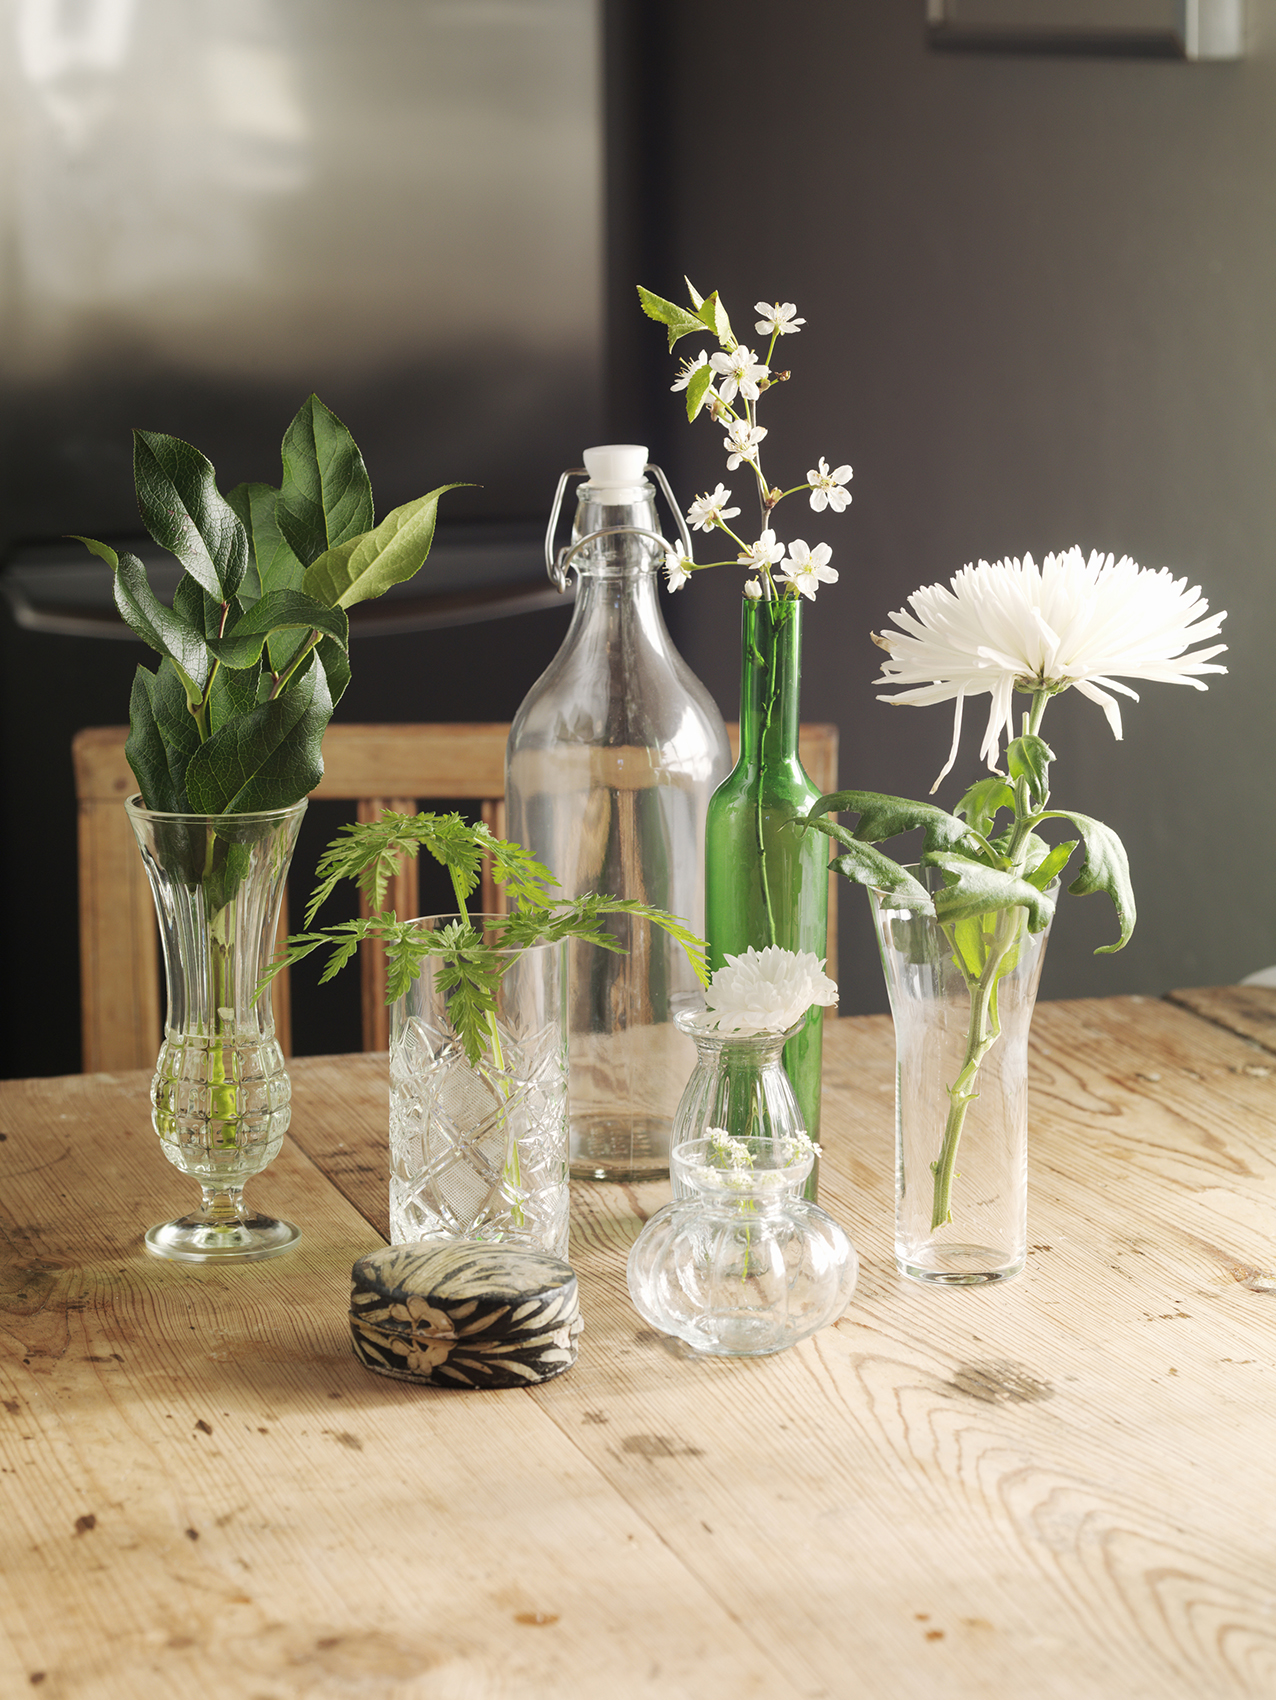 Flowers and clear vases on table